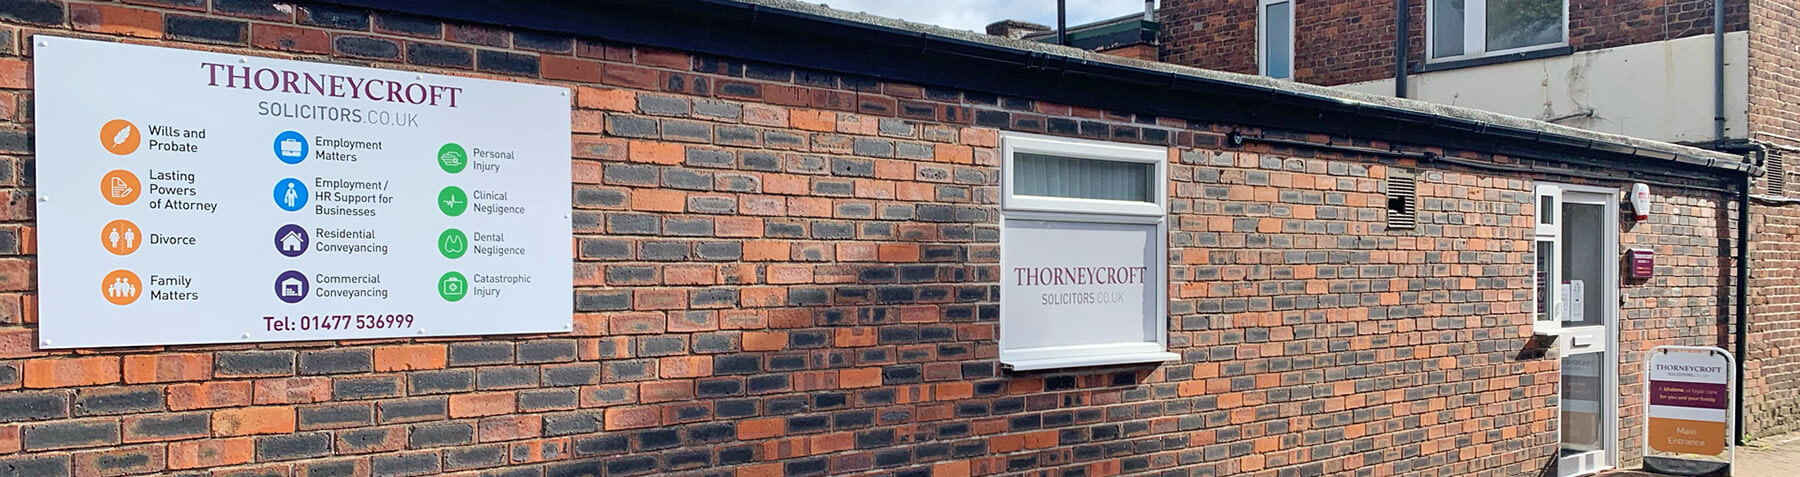 Holmes Chapel - Thorneycroft Solicitors